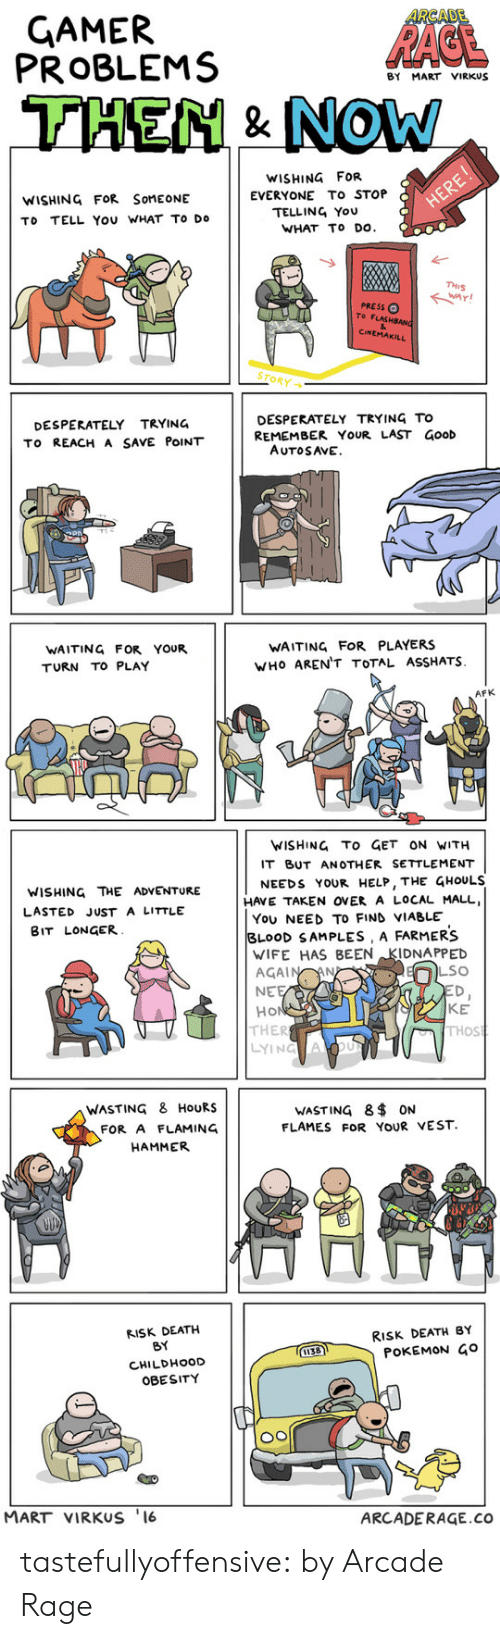 Thos: ARCADE  GAMER  PROBLEMS  RAGE  BY MART VIRKUS  THEN& NOW  WISHING FOR  EVERYONE To STOP  TELLING YOU  WHAT TO DO  WISHING FOR SOMEONE  HERE!  TO TELL You WHAT TO DO  THIS  PRESSO  To FLASHSANG  &  CINEMAKILL  STORY  DESPERATELY TRYING TO  REMEMBER YOUR LAST GooD  AUTOSAVE  DESPERATELY TRYING  To REACH A SAVE POINT   WAITING FOR YOUR  WAITING FOR PLAYERS  WHO AREN'T TOTAL ASSHATS  TURN TO PLAY  AFK  WISHING TO GET ON WITH  IT BUT AN OTHER SETTLEMENT  NEEDS YOUR HELP, THE GHOULS  HAVE TAKEN OVER A LOCAL MALL  You NEED TO FIND VIABLE  BLOOD SAMPLES , A FARMERS  WIFE HAS BEEN KIDNAPPED  AGAIN AN  NEE  HO  THER  LYING ACOu  WISHING THE ADVENTURE  LASTED JUST a LITTLE  BIT LONGER  LSO  ED,  KE  THOS  WASTING & HOURS  WASTING 8 ON  FLAMES FOR YOUR VEST.  FOR A FLAMING  HAMMER   RISK DEATH  RISK DEATH BY  POKEMON Go  BY  1138  CHILDHOOD  OBESITY  MART VIRKUS '16  ARCADERAGE.co tastefullyoffensive:  by Arcade Rage